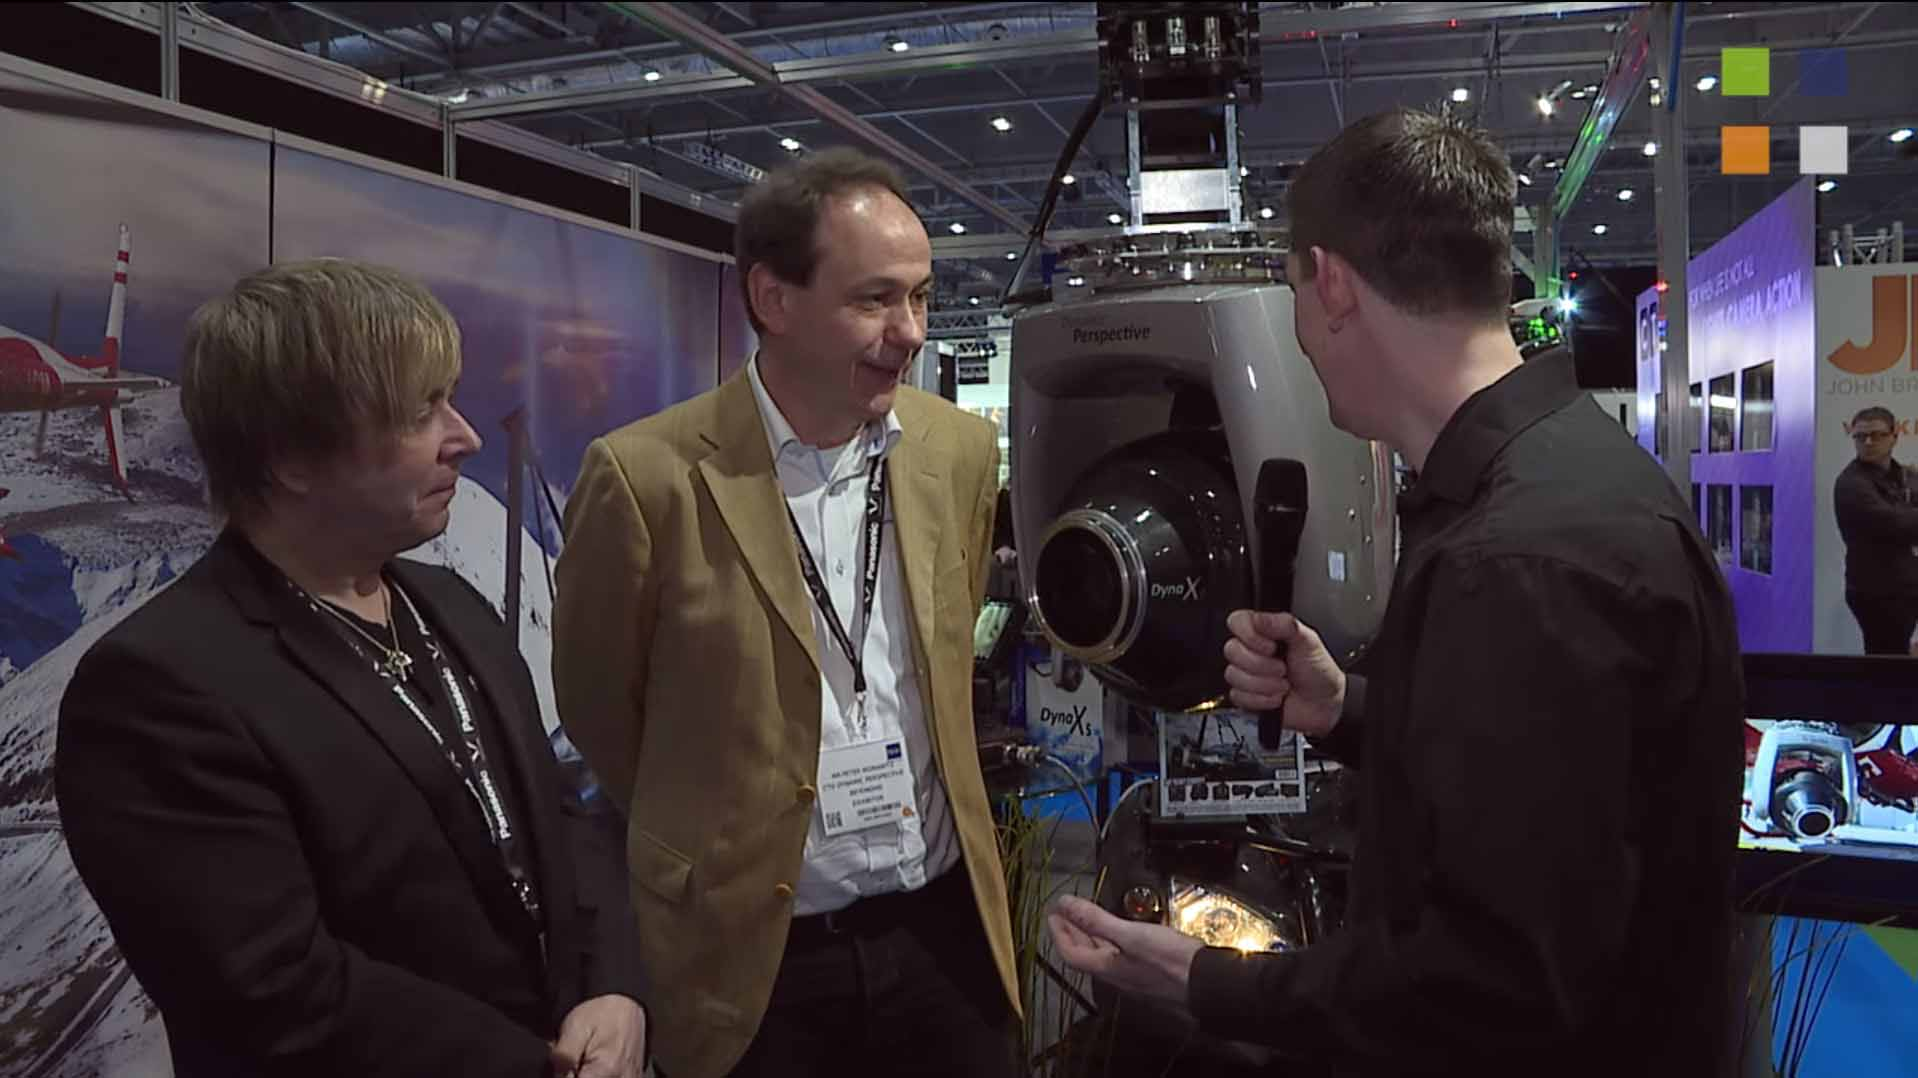 Dynamic Dyna X5 at BVE 2016